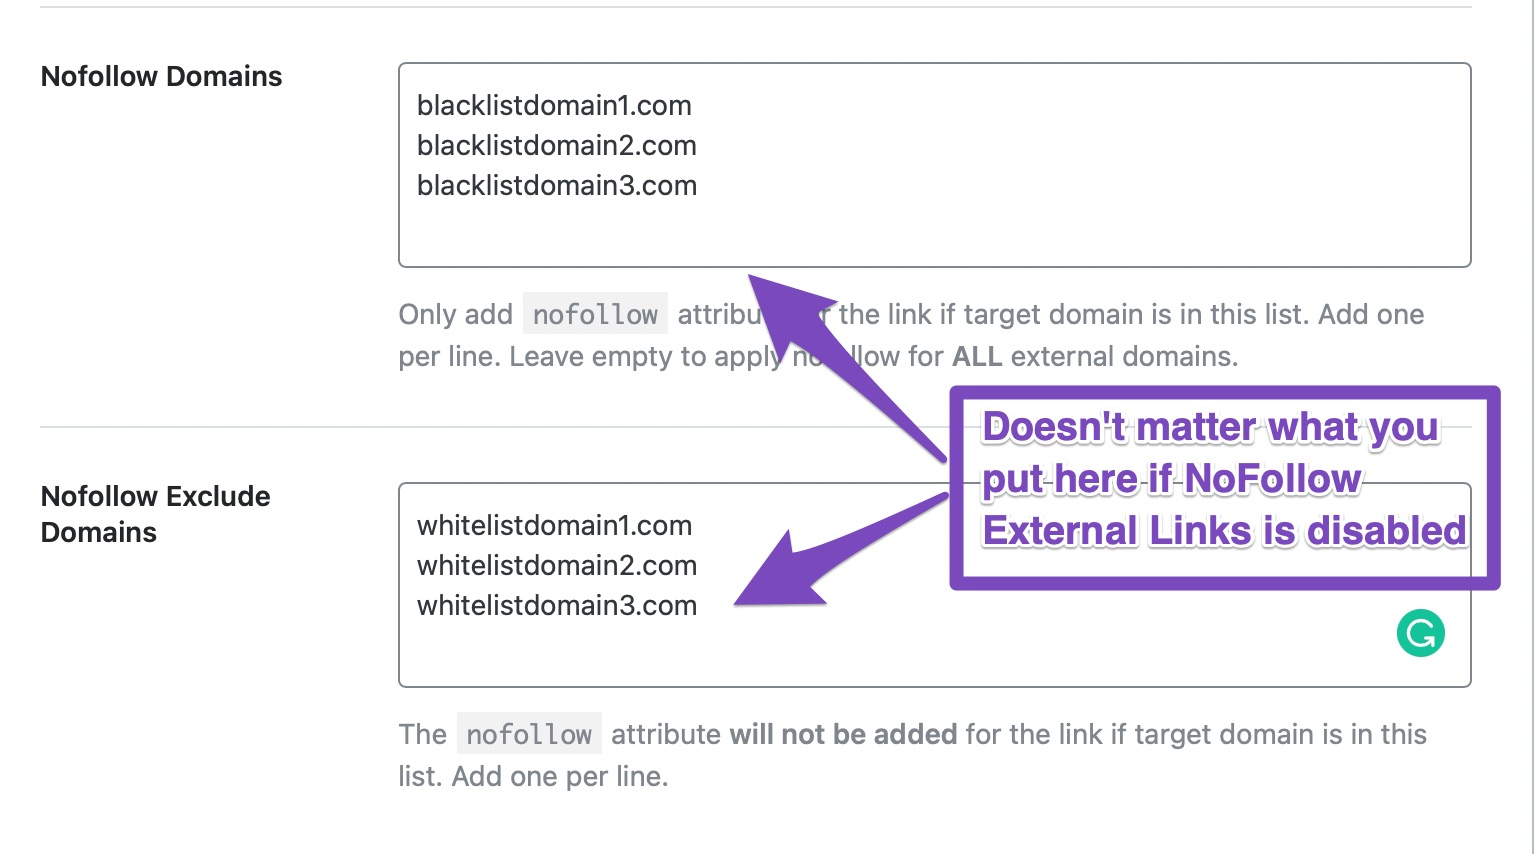 what happens if nofollow external links are off